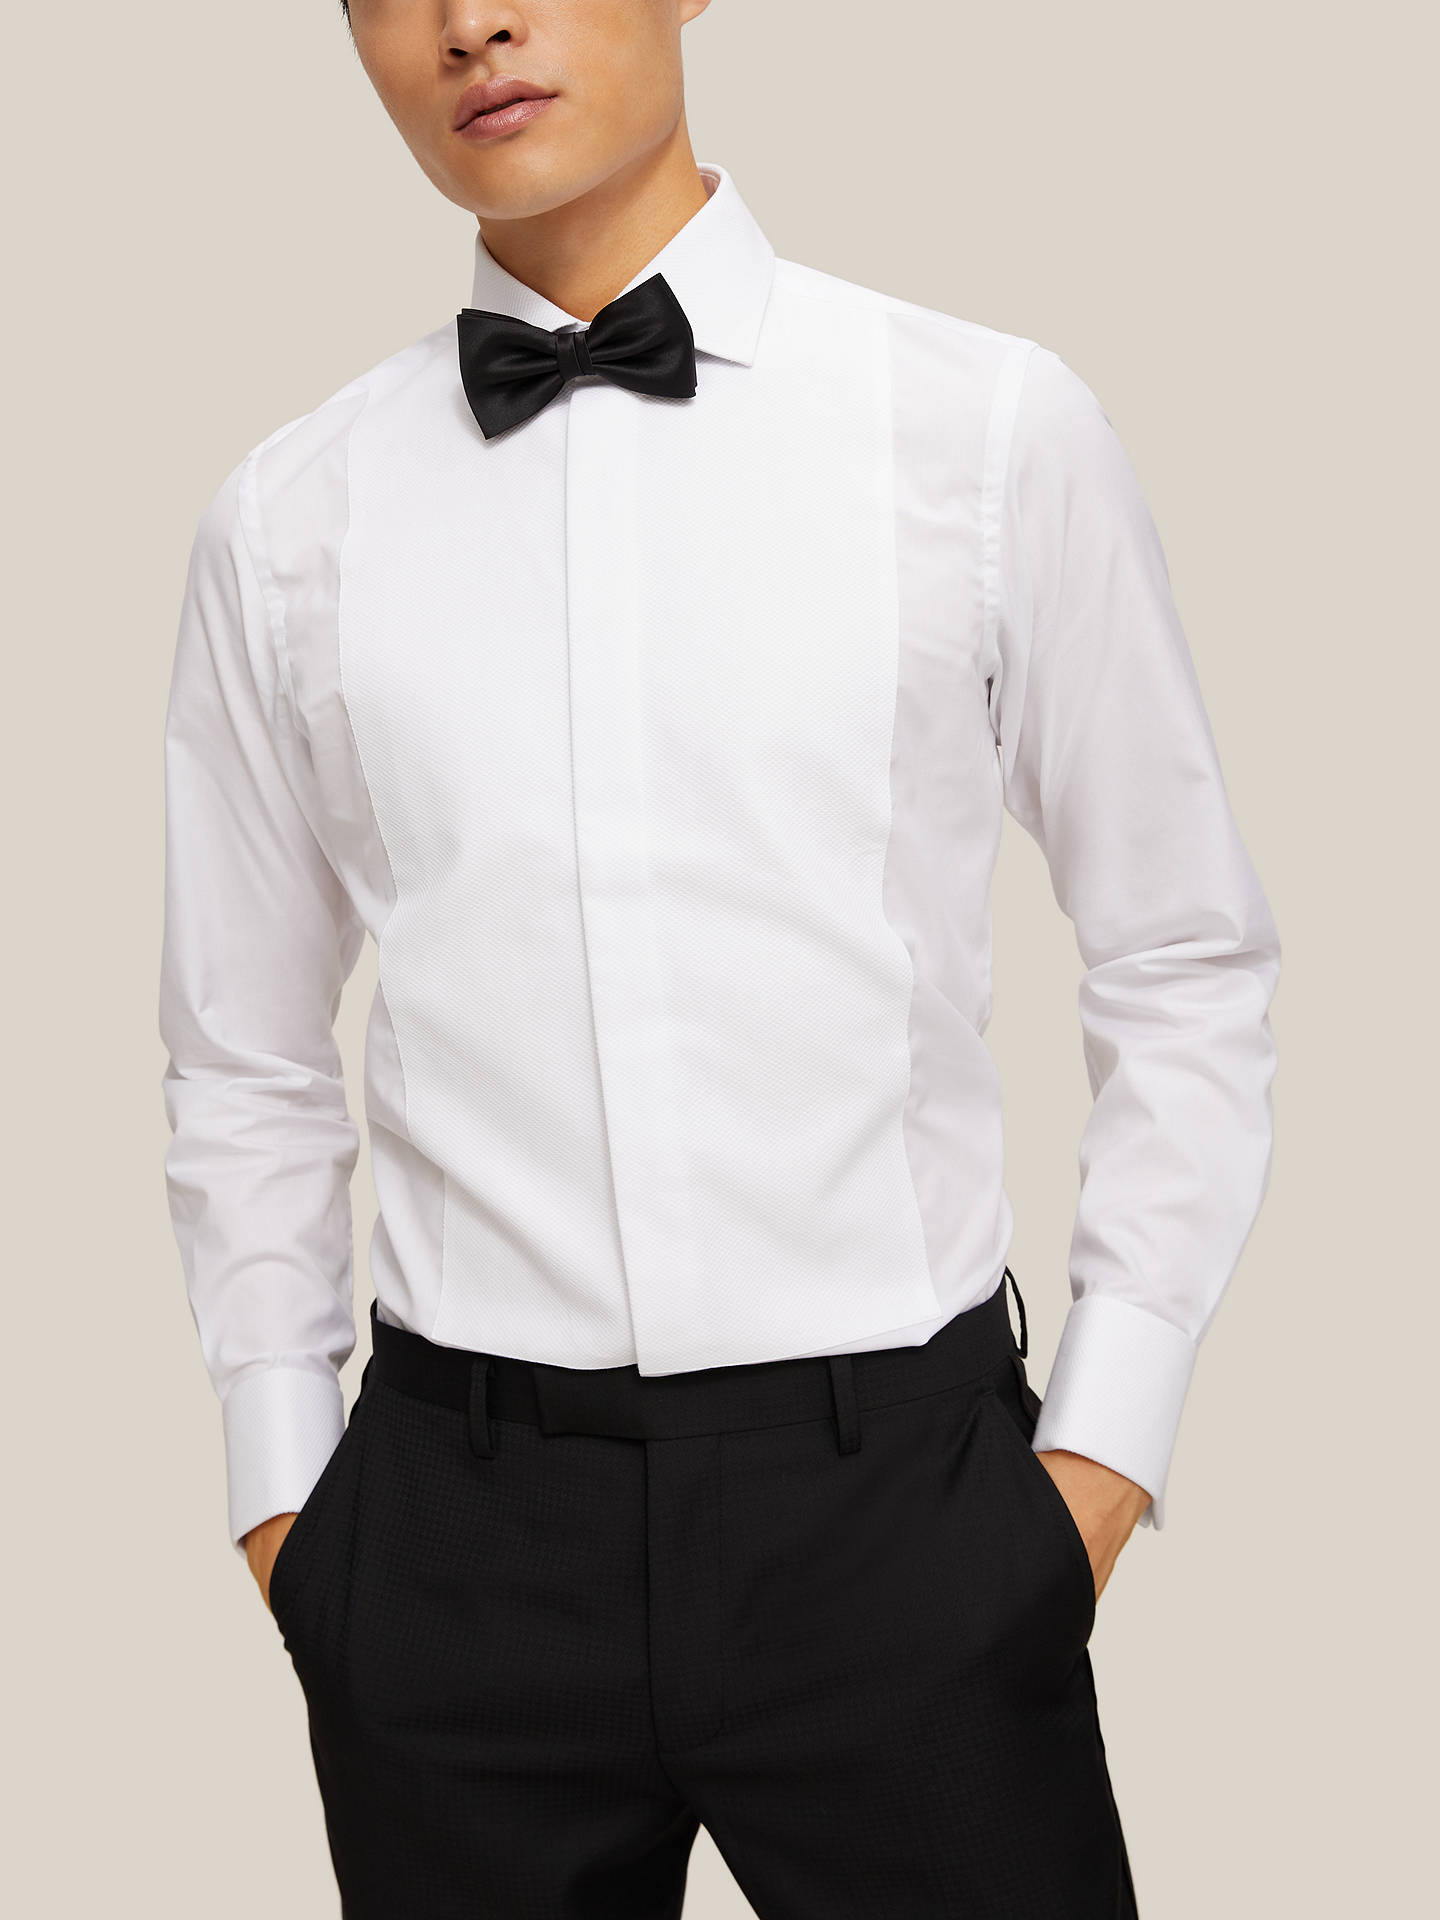 BuySmyth & Gibson Non Iron Marcella Slim Fit Dress Shirt, White, 15 Online at johnlewis.com